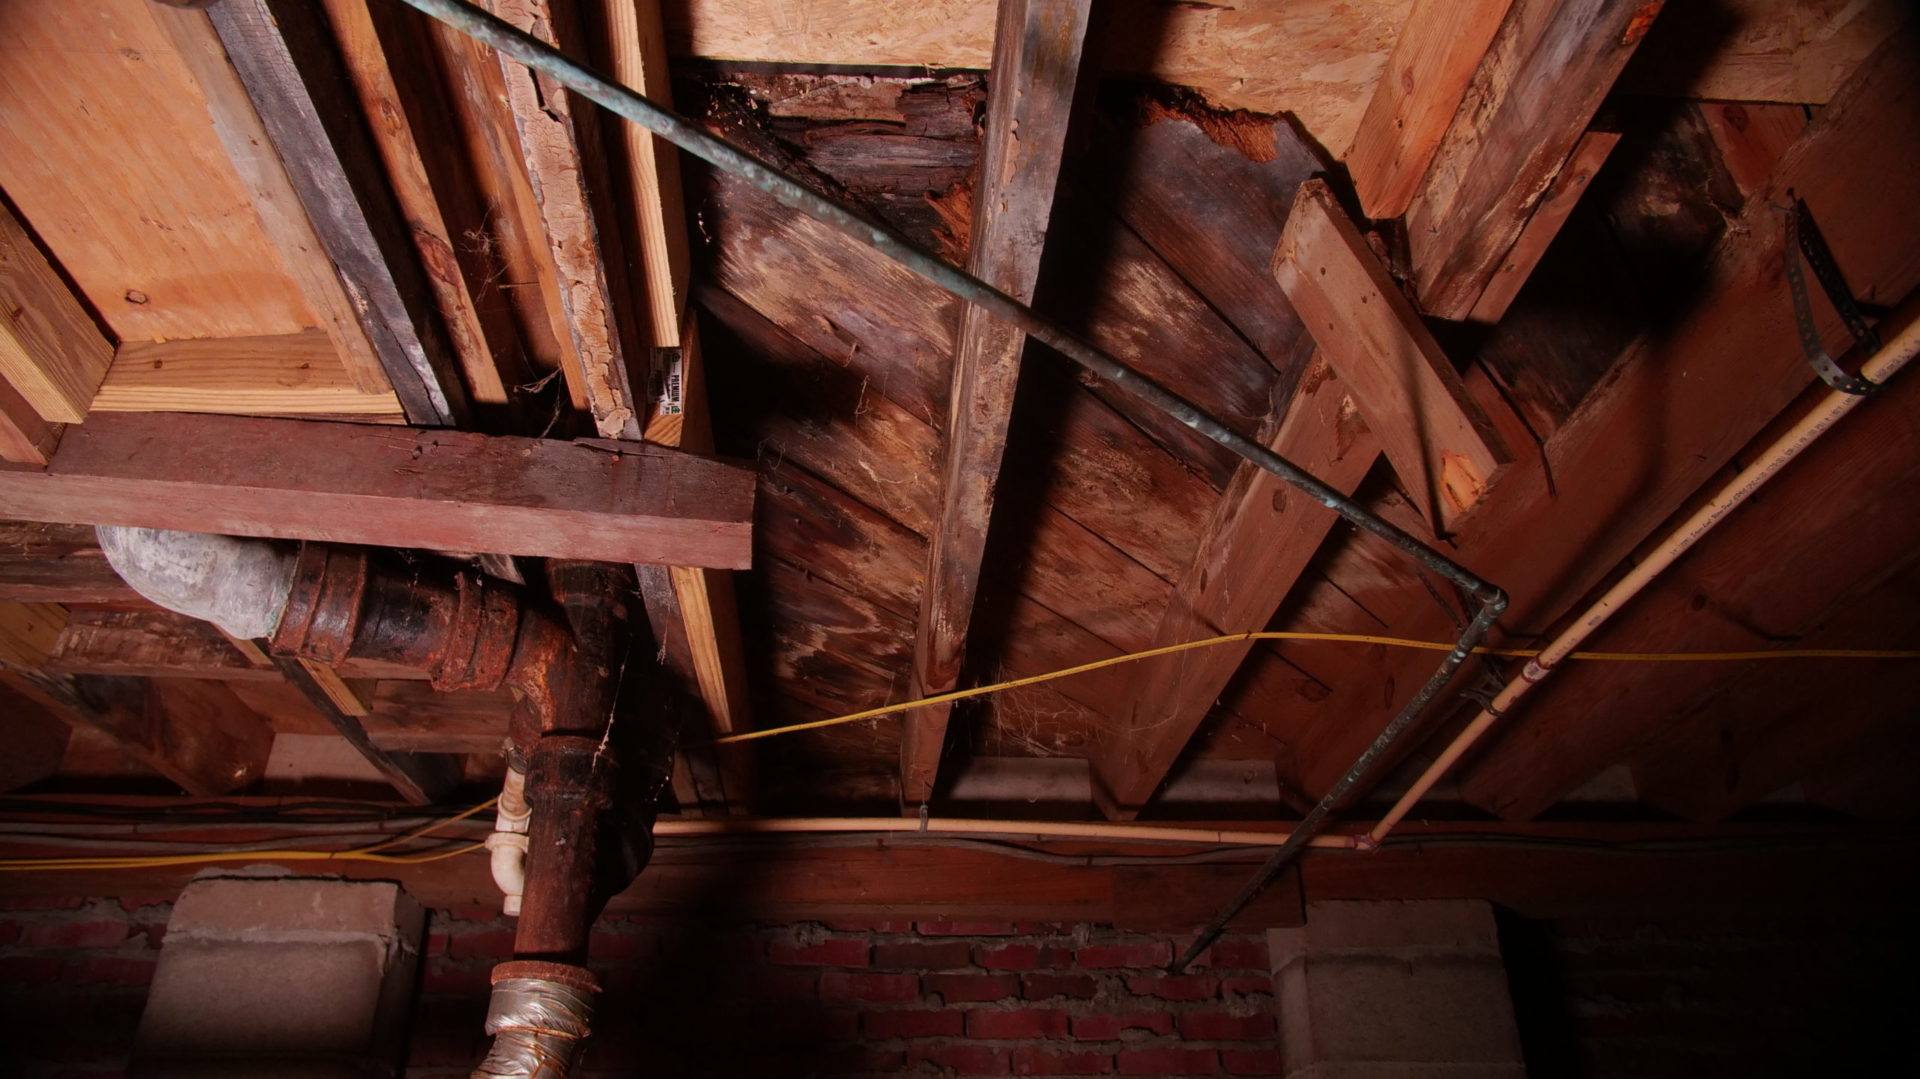 rusty pipes with rotting wood floor joists